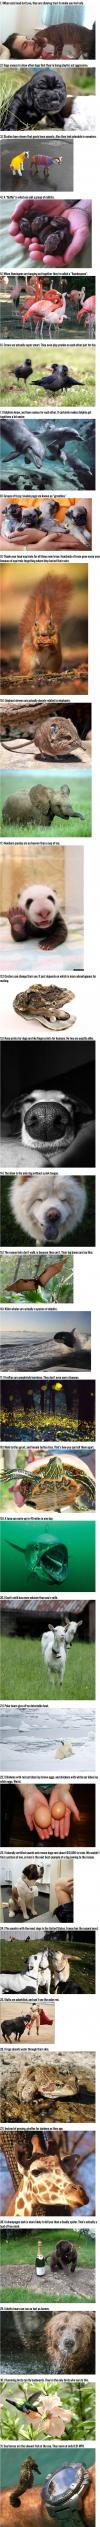 here are 31 random facts about all kinds of animals